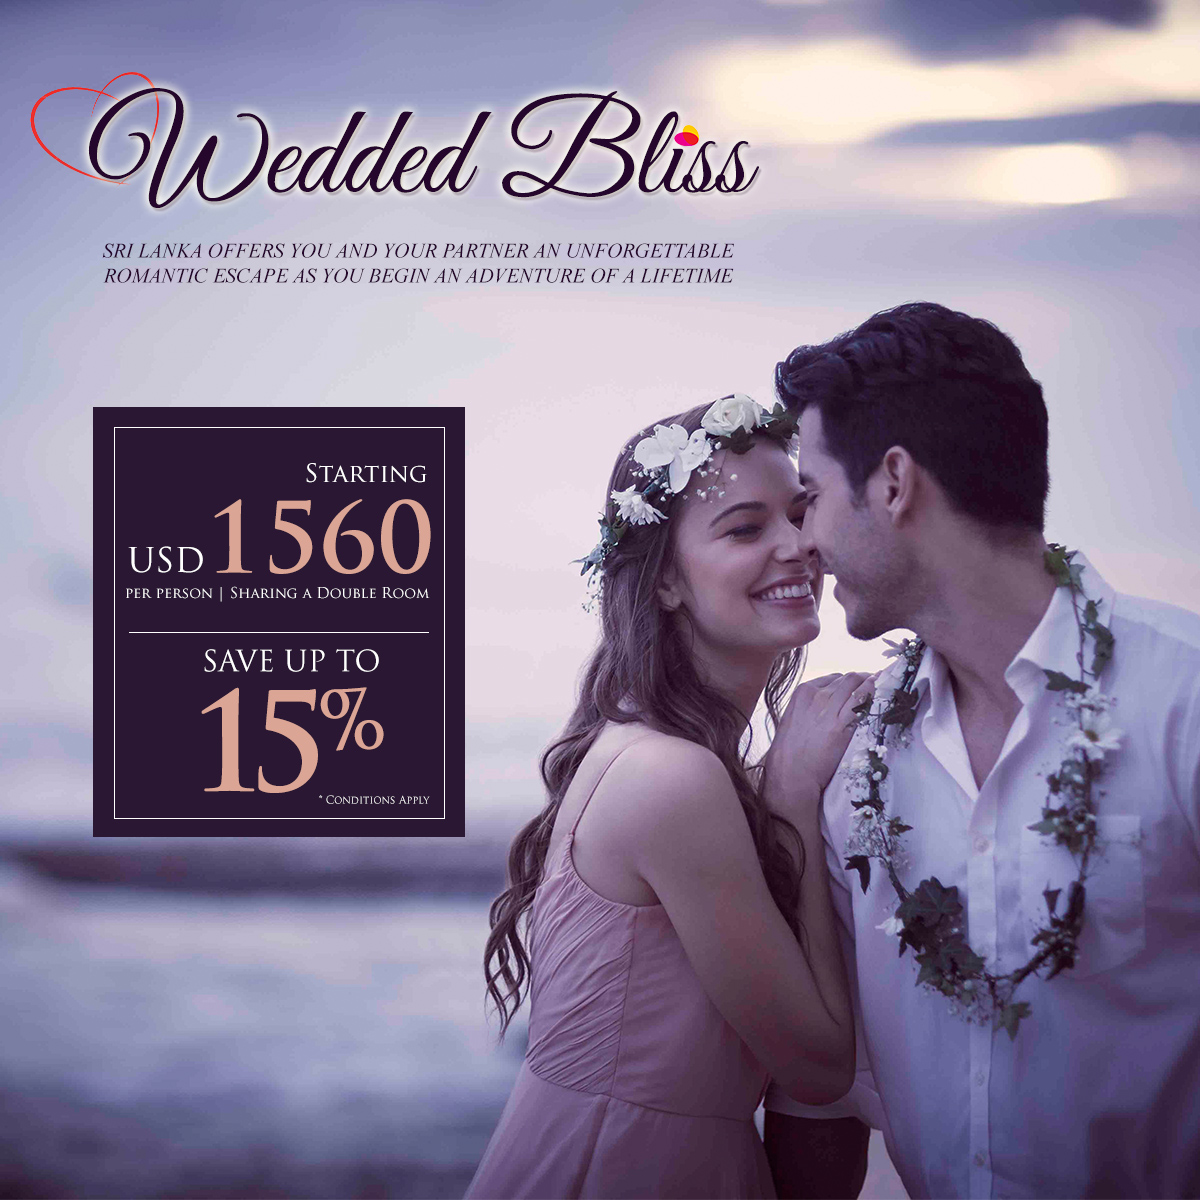 Wedded Bliss 2017